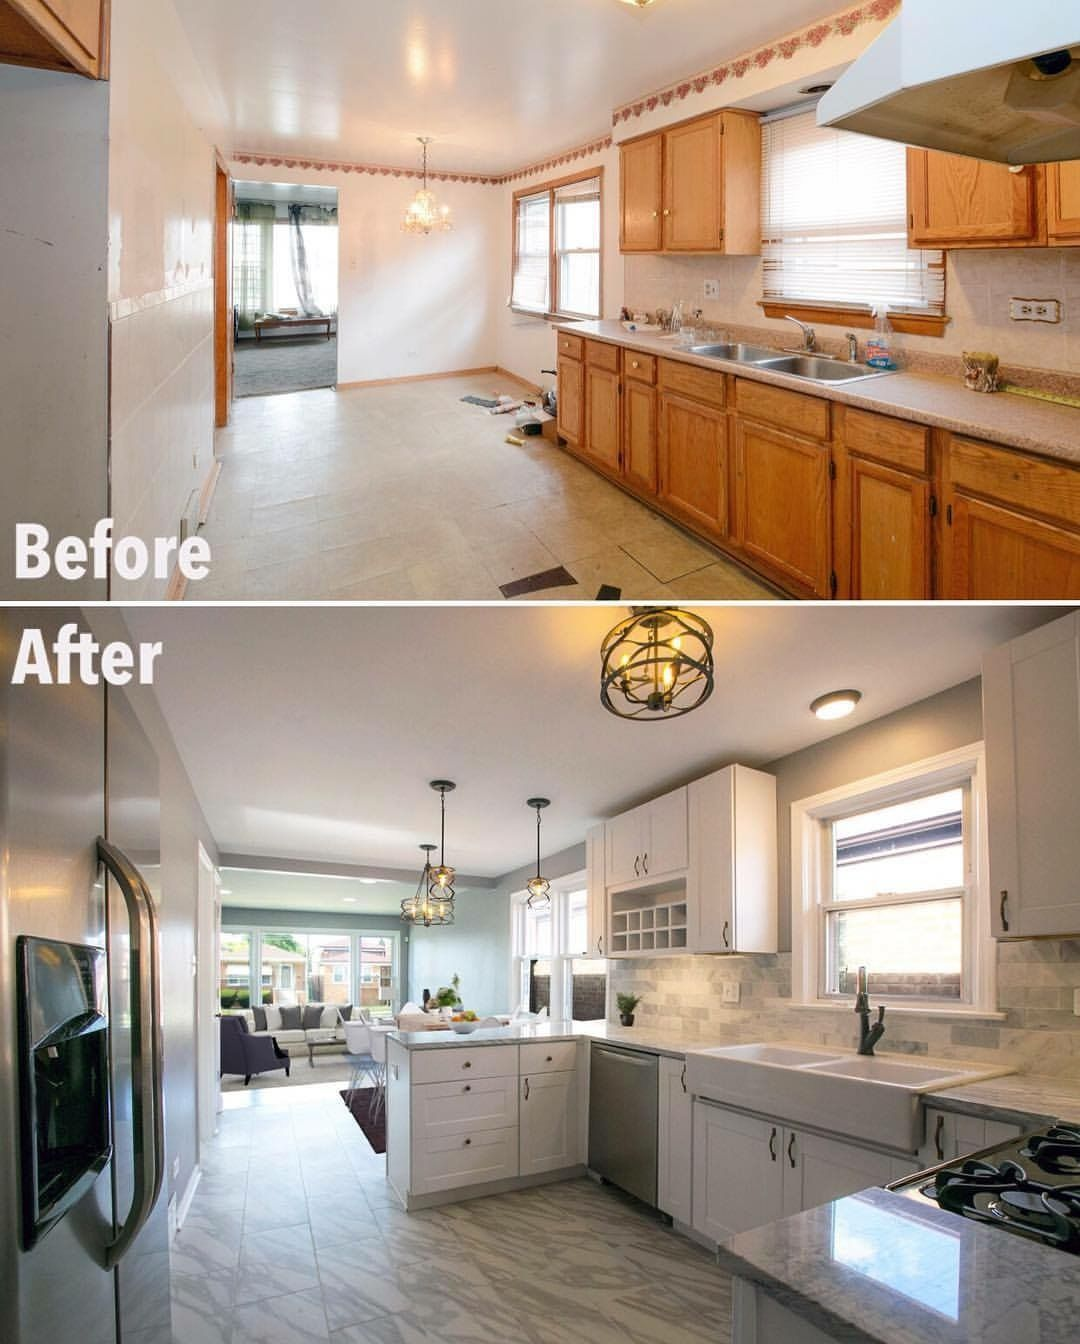 Pin By Anna Mondry On Home Improvements Kitchen Remodel Cost Diy Kitchen Remodel Average Kitchen Remodel Cost